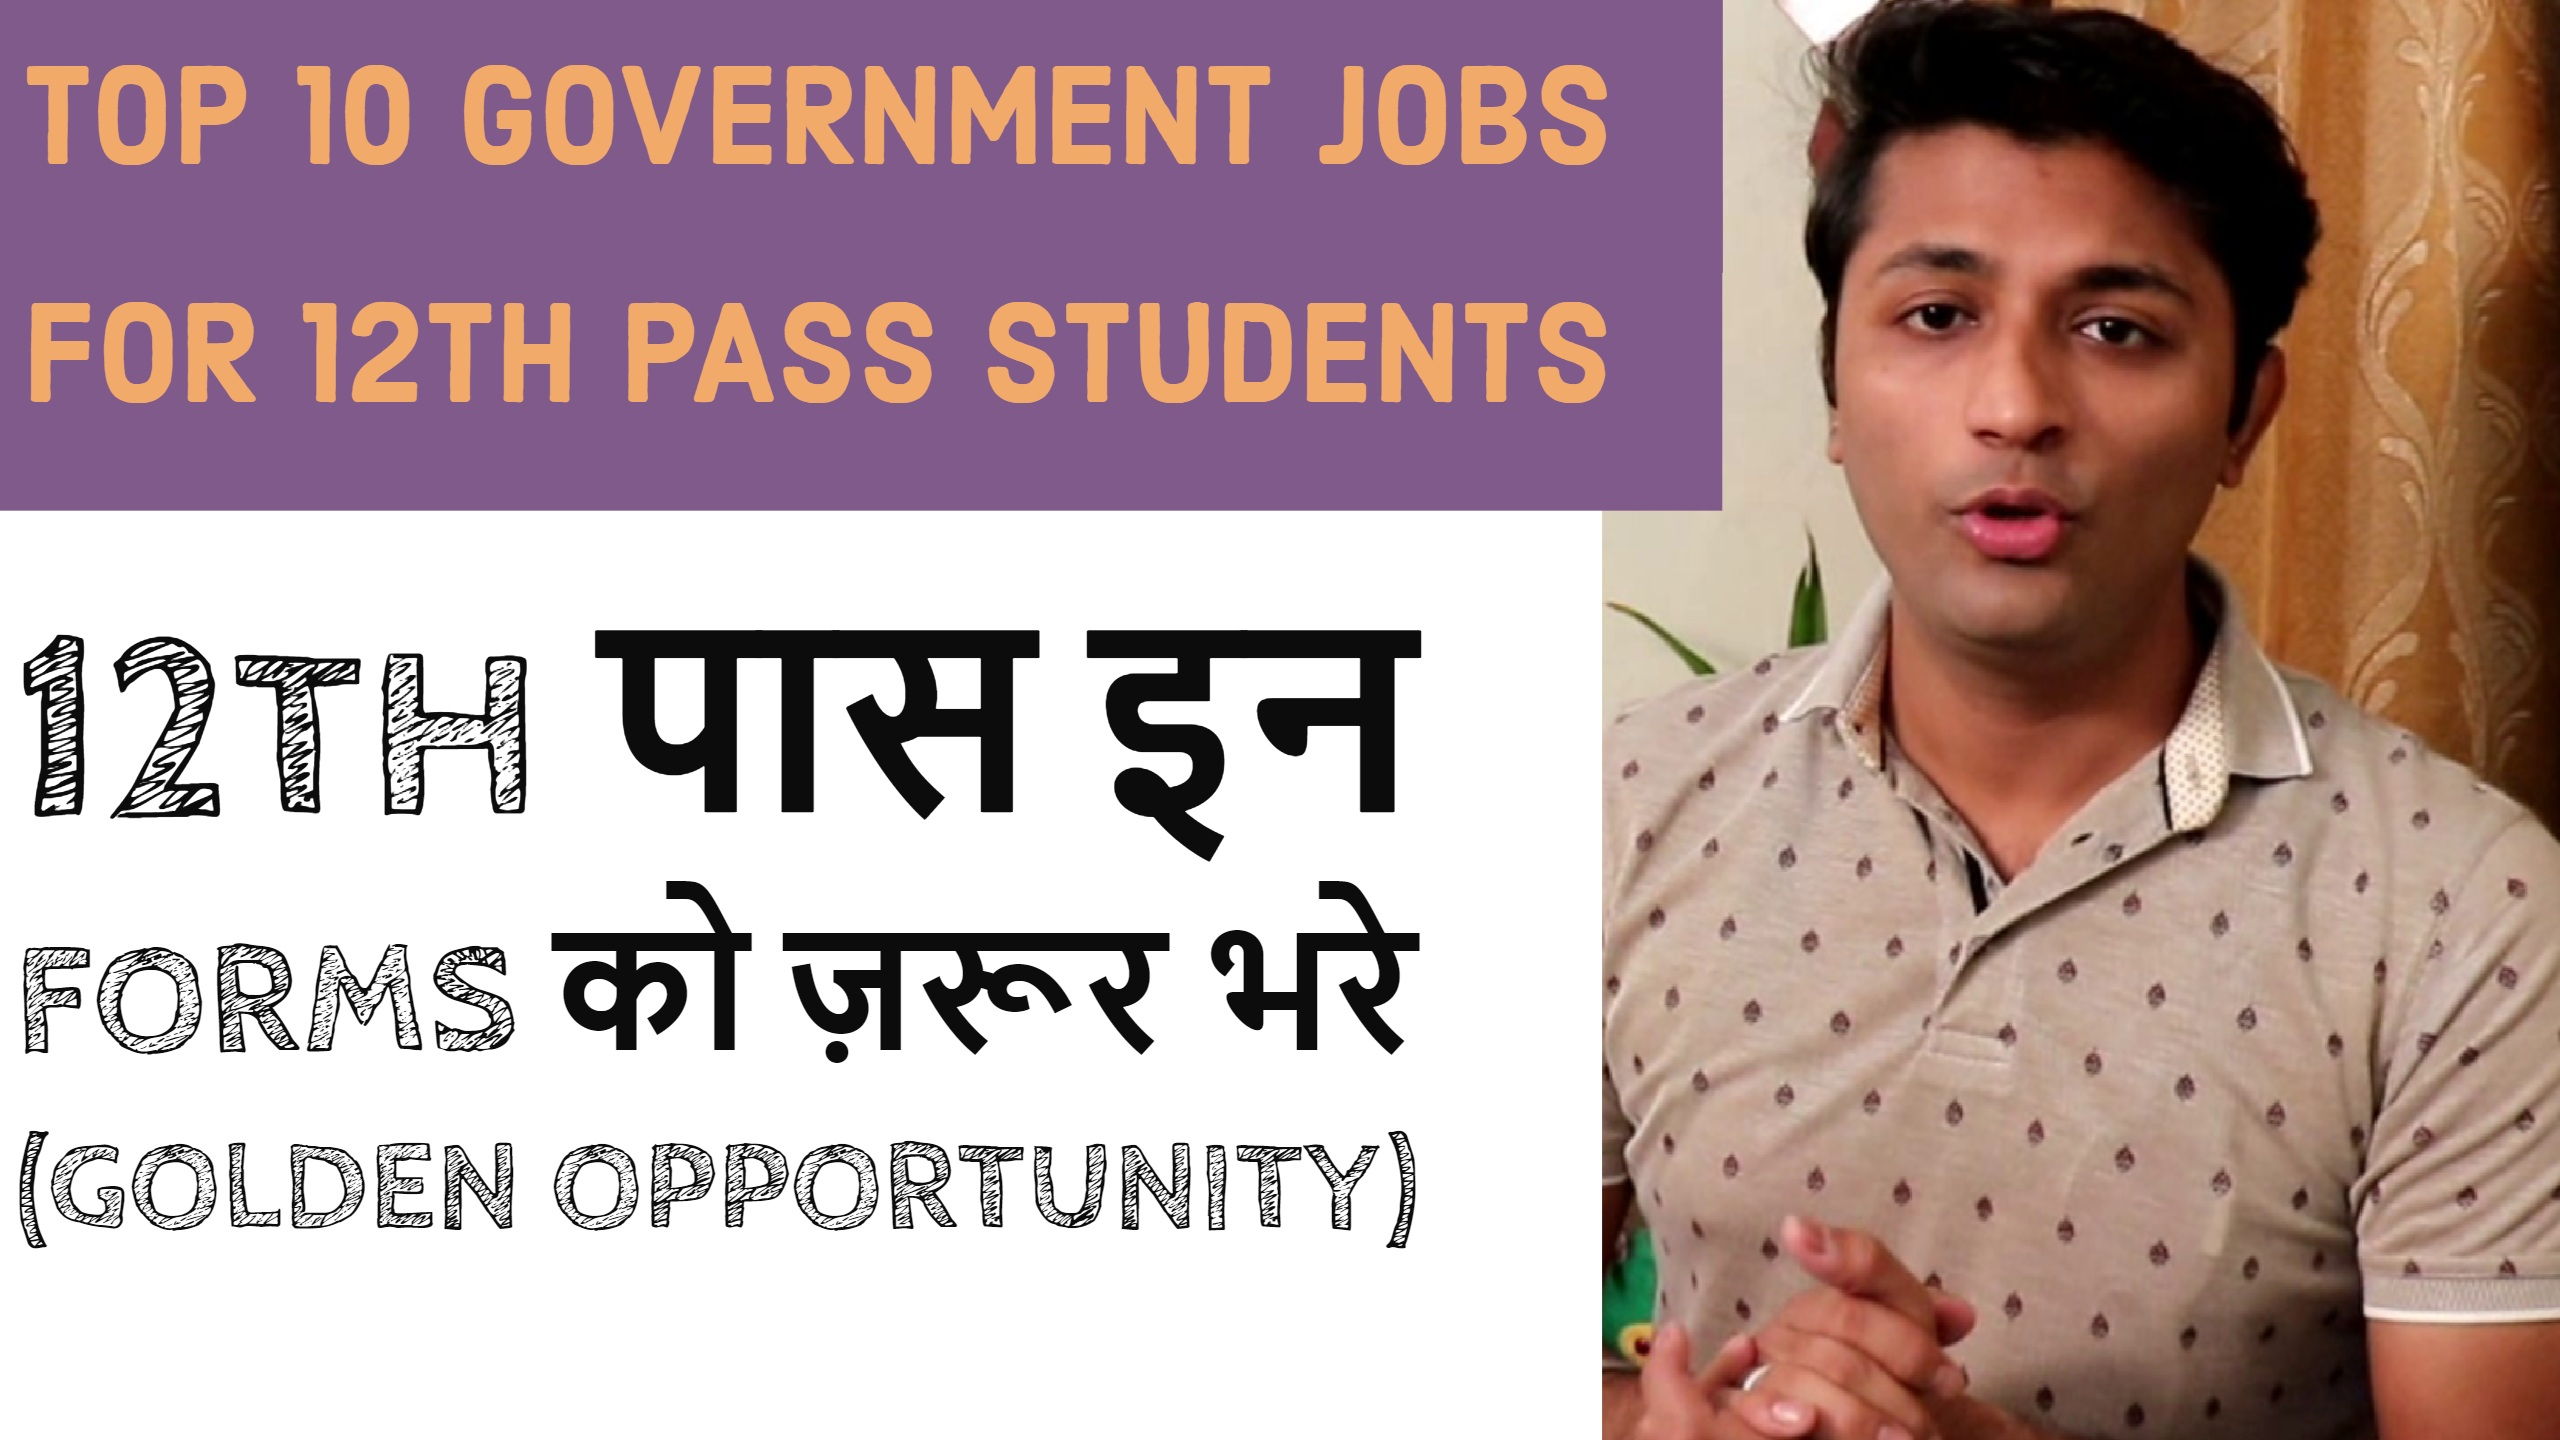 Top 10 Government Jobs For 12th Pass Students Knower Nikhil